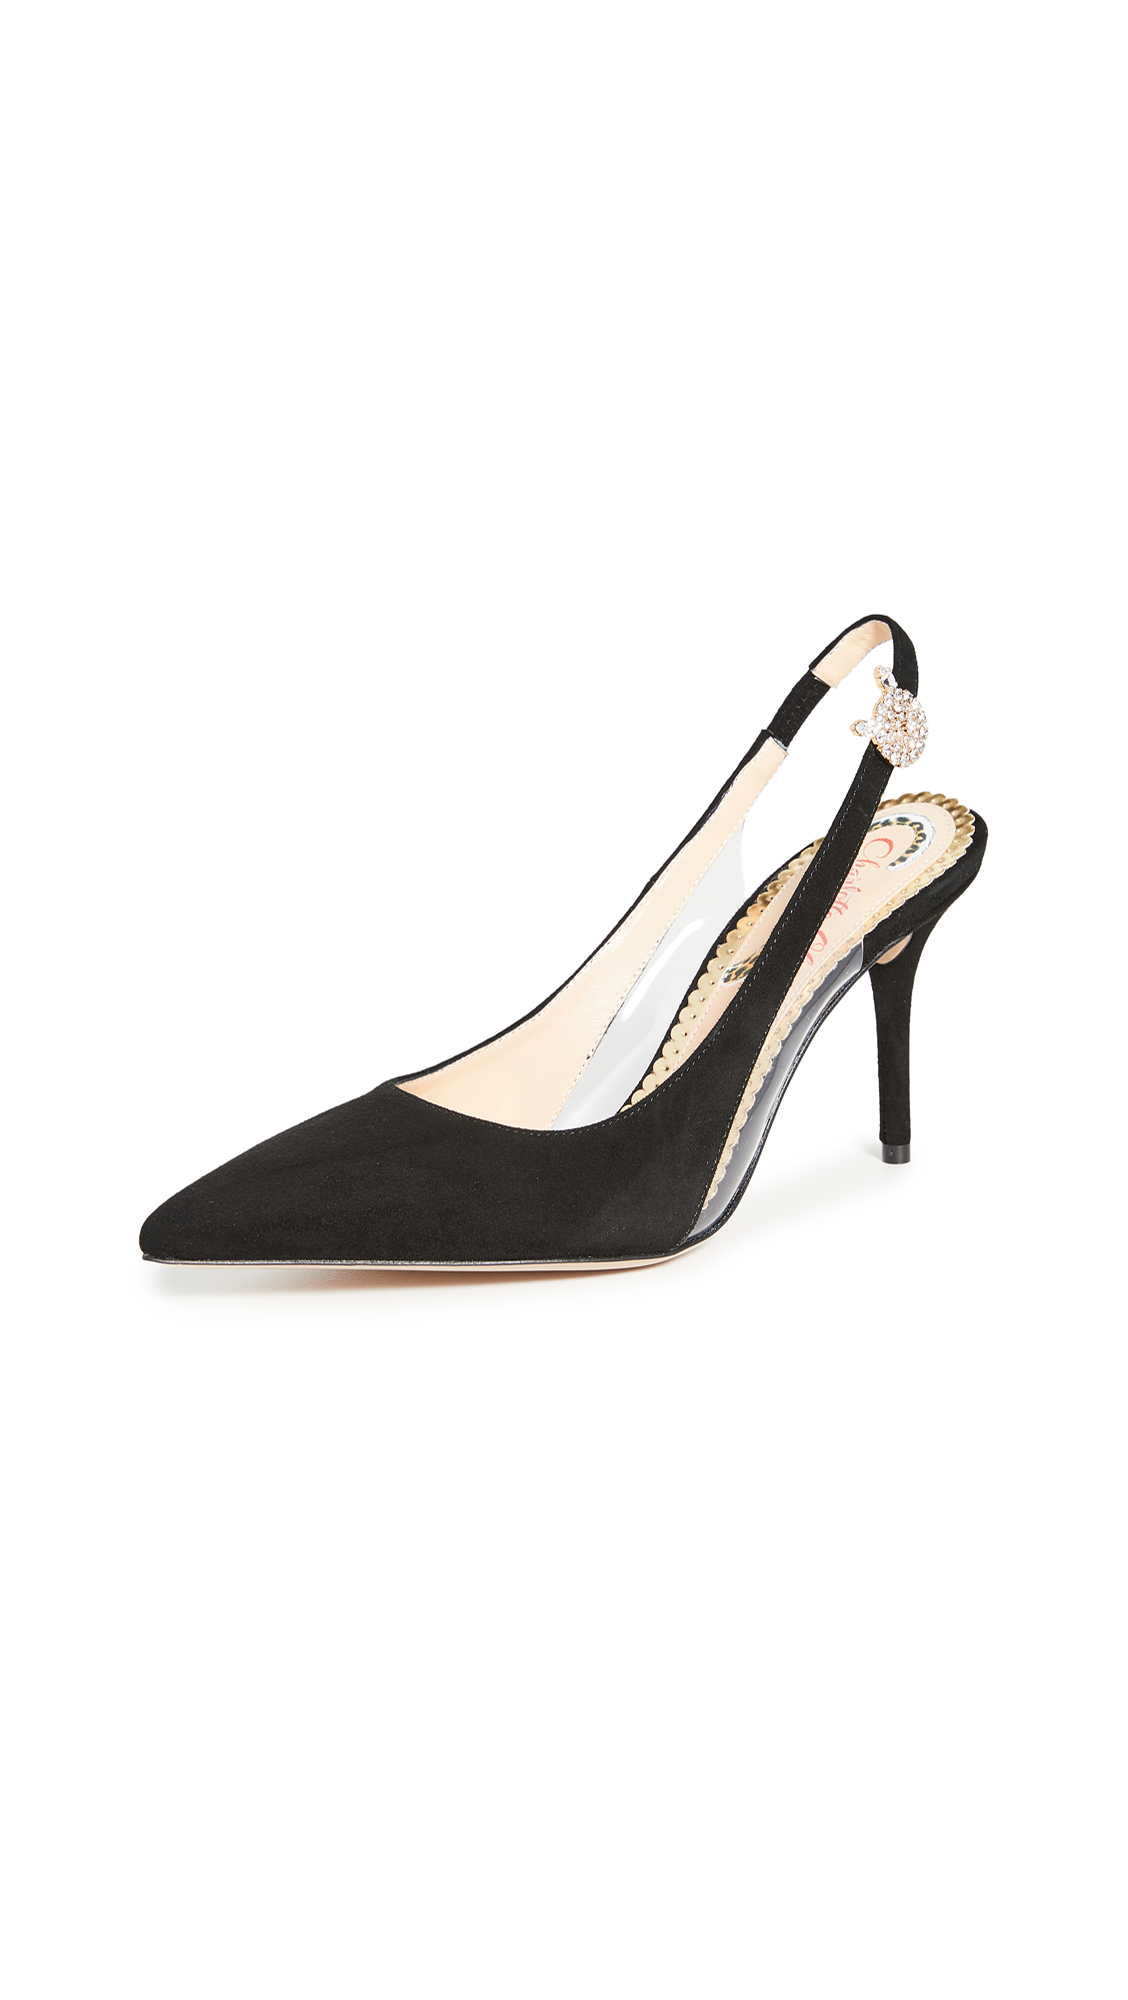 Charlotte Olympia Slingback Pumps - 60% Off Sale